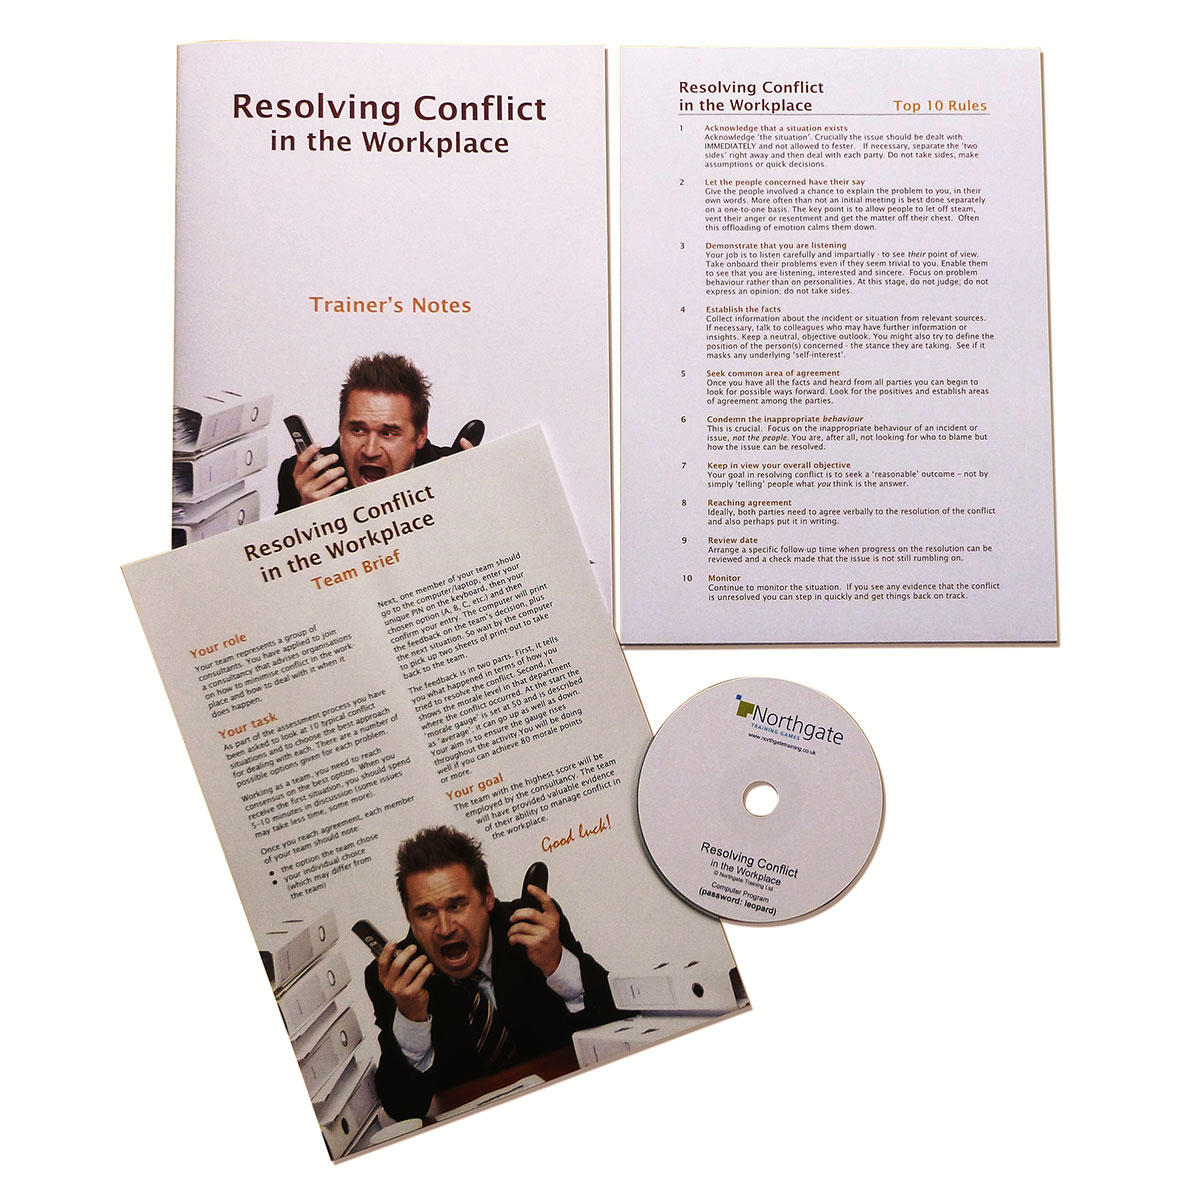 the process of identifying and resolving conflict in the workplace How you utilize conflict resolution strategies depends on both your conflict style and your conflict resolution skills there are many different ways to respond to conflict situations some conflict styles involve a considerate or cooperative approach while others involve either a competitive or passive approach.